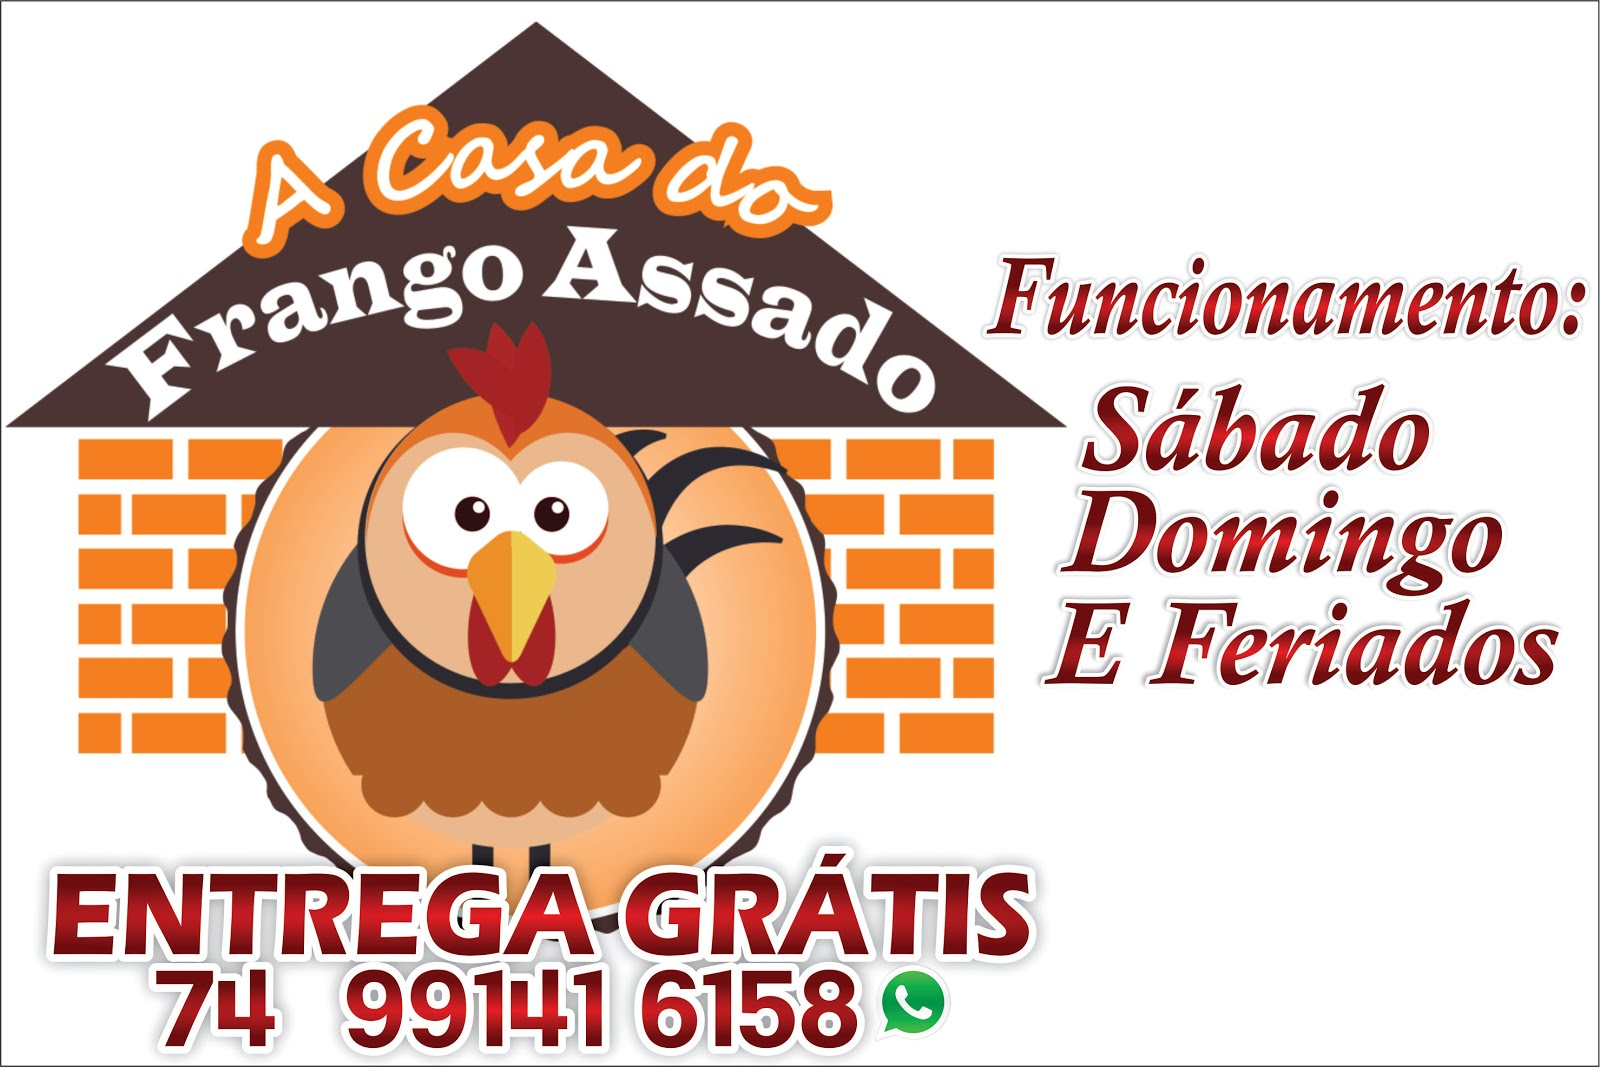 CASA DO FRANGO ASSADO